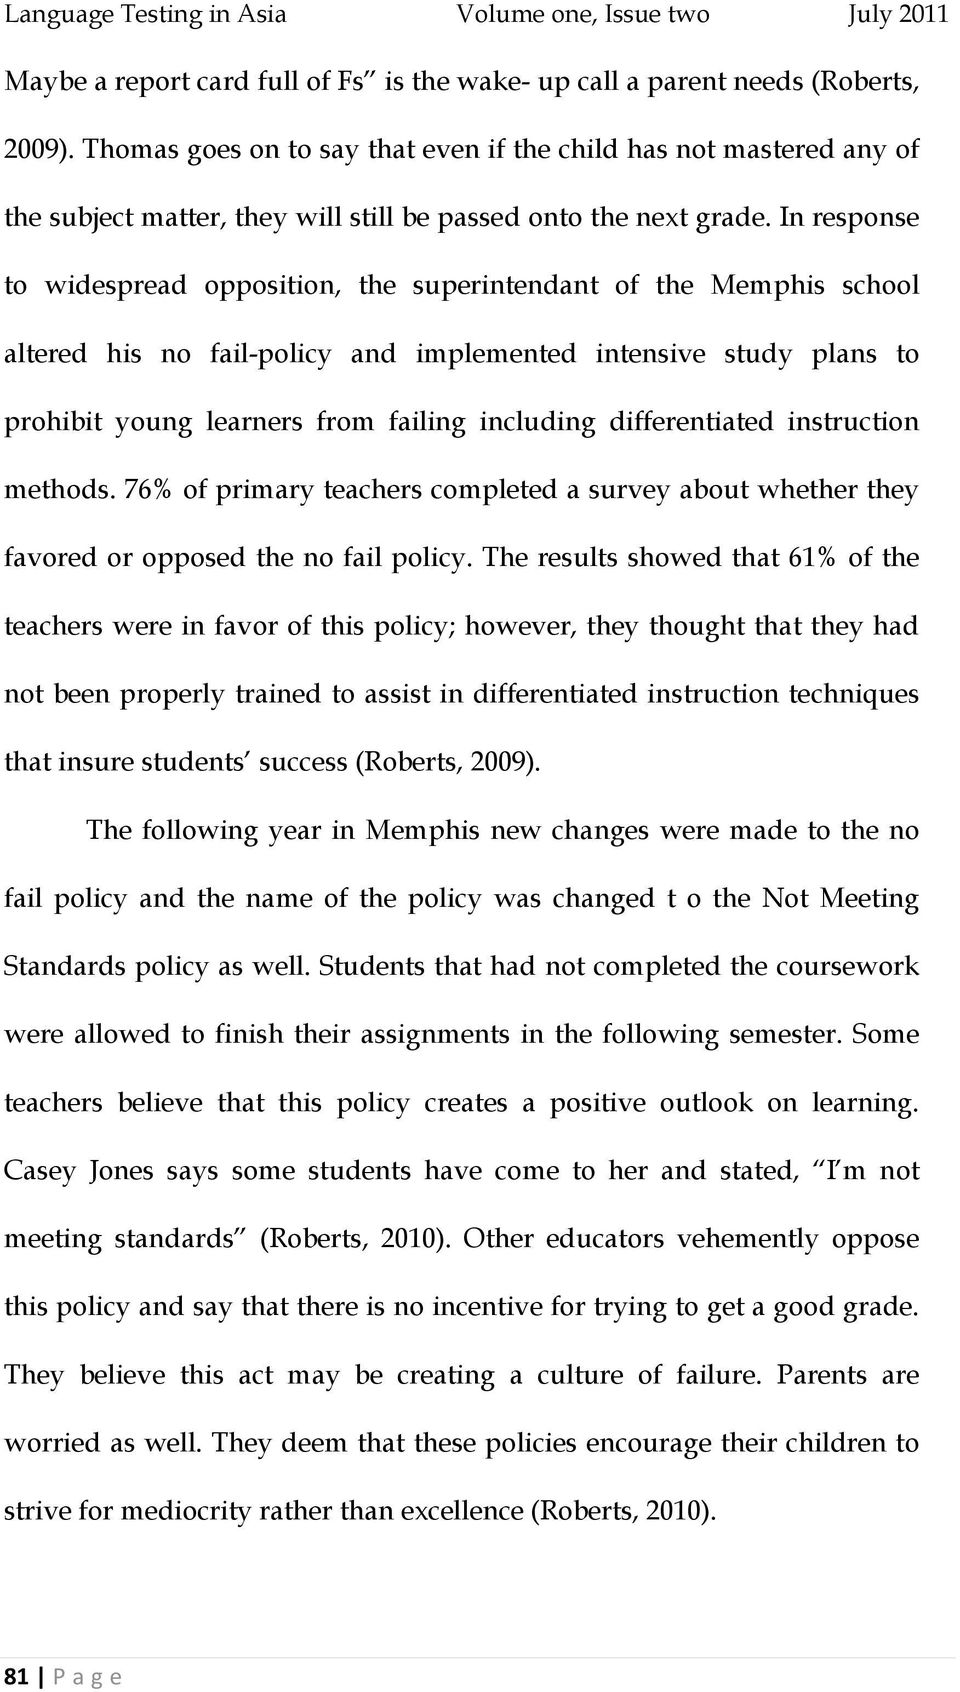 In response to widespread opposition, the superintendant of the Memphis school altered his no fail-policy and implemented intensive study plans to prohibit young learners from failing including